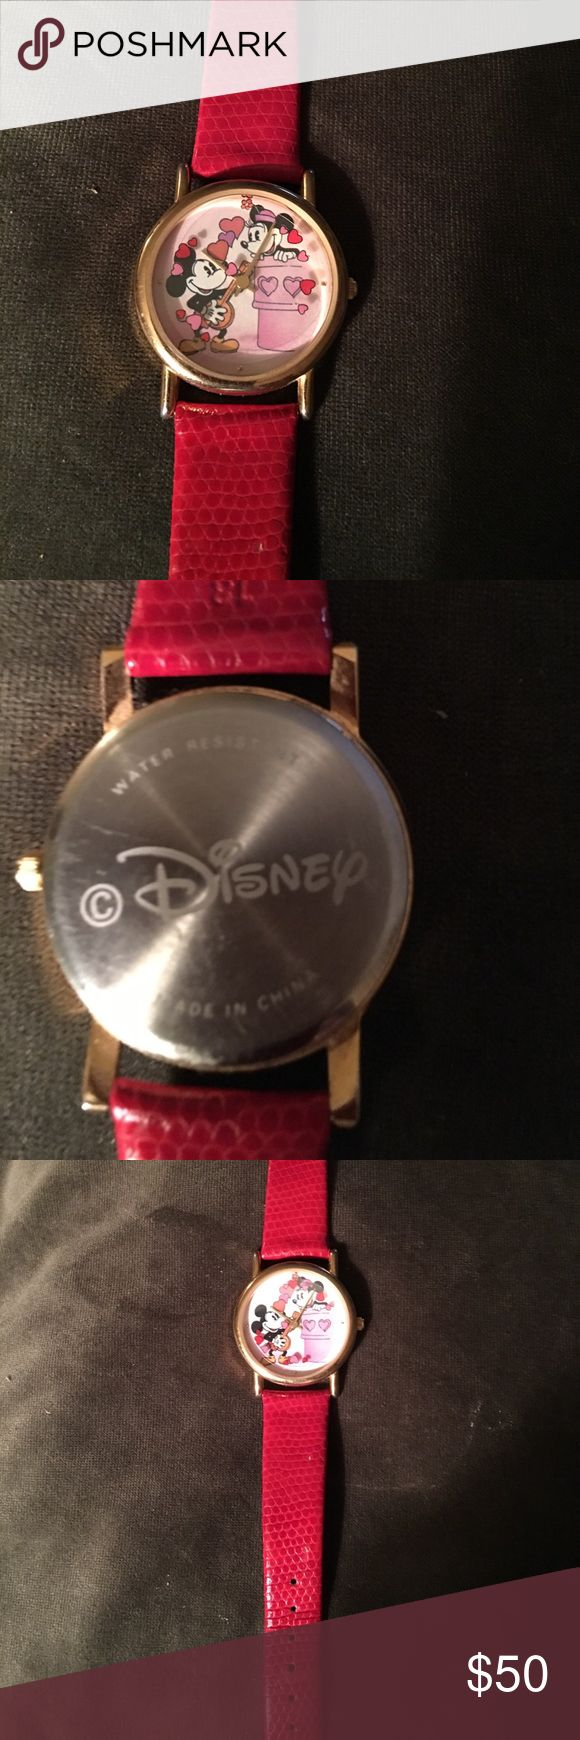 Disney Mickey & Minnie Quartz Watch This is a cute watch. The second hand is hearts that go around . Red leather band . Very unique watch Disney Accessories Watches